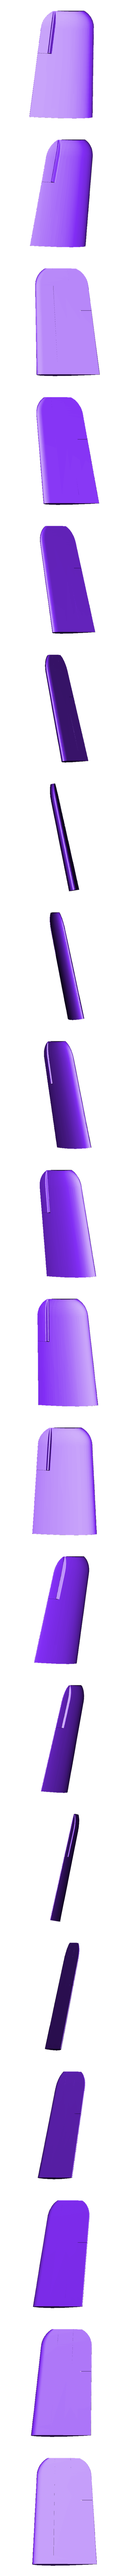 Thick_Wing_Left_Outer.stl Download free STL file Flyer Mk. 1 • 3D printing object, billbo1958